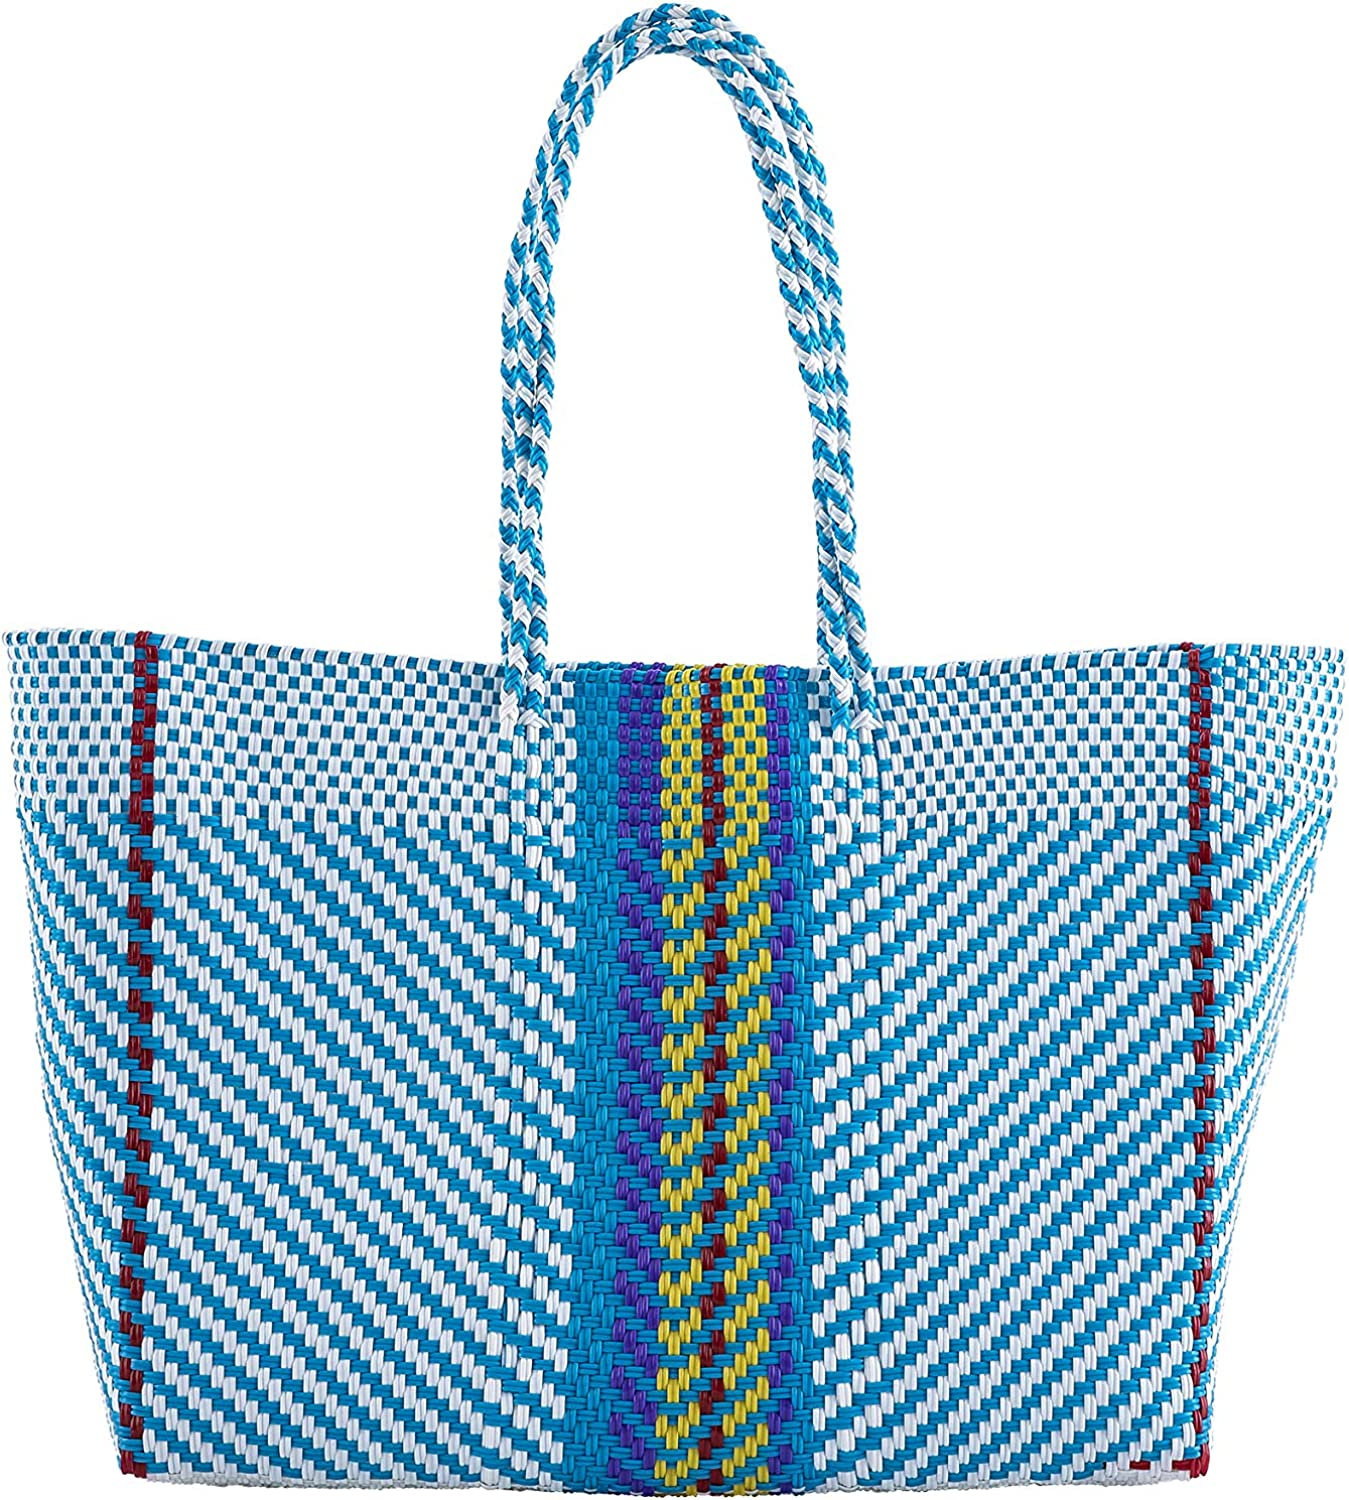 Beach bags, waterproof beach bags, handmade plastic bags and totes, summer bags, unique bags